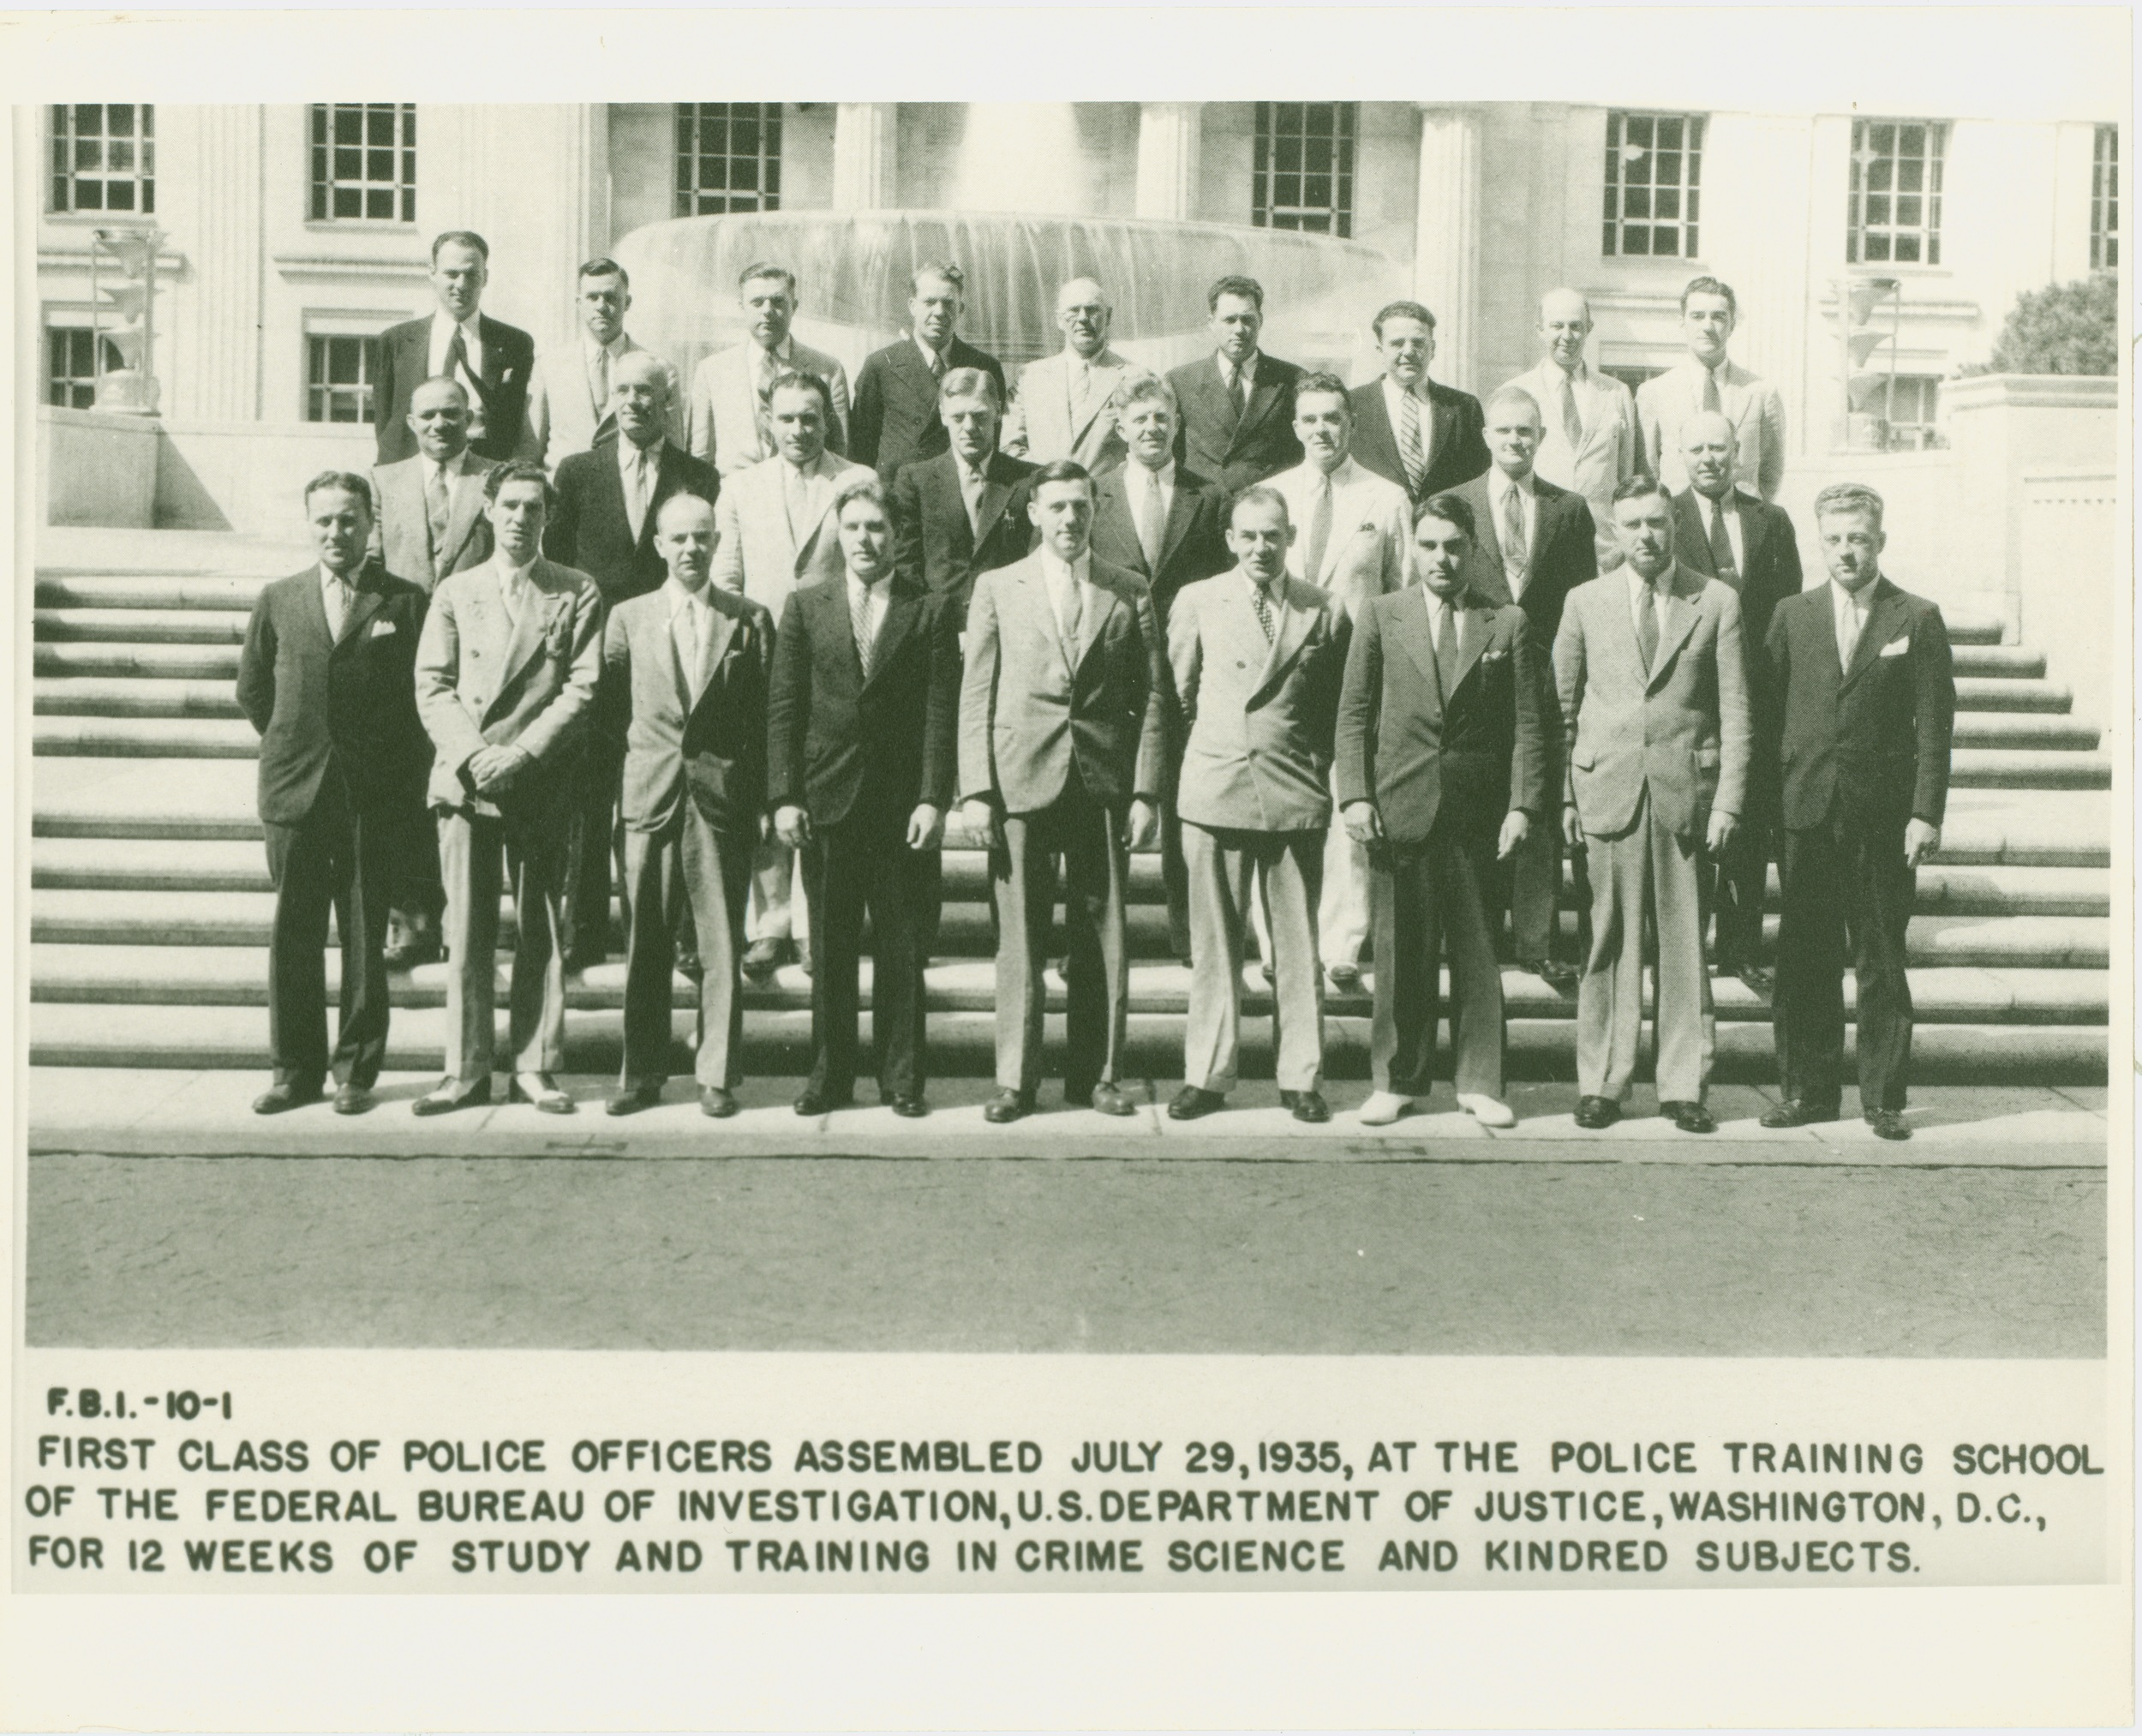 "(Photo courtesy FBI; names not immediately available)   Eighty years ago, on July 29, 1935, the FBI opened its training facilities and expertise to law enforcement officers across the U.S., and the  FBI's National Academy  was born. The FBI's historian, Dr. John Fox tells us:   The idea of a national training academy was first raised in late 1934 as part of U.S. Attorney General Homer Cummings' ""war on crime."" FBI Director J. Edgar Hoover then fleshed out an idea for professional education for law enforcement officers at the annual meeting of the International Association of Chiefs of Police (IACP) held in early July 1935. An IACP committee on police training had urged Director Hoover, who spoke at the conference on the value of professional police training, to consider offering such training under FBI auspices.   FBI Assistant Director Hugh Clegg, sometimes referred to as the founder of the National Academy, was tasked with a monumental job. A manuscript we found in his personnel file supports the above and gives us some insight into a remarkable achievement within just a one month period. Clegg's papers read, in part,    ""Mr. Hoover returned to Washington, [called for Clegg], discussed the request briefly and asked for a quick call to several SACs for their opinion due to their close relationships with local agencies. They were requested to contact some local police executives for their views. [Clegg] was instructed to organize the police school, prepare a detailed curriculum, select an assign a faculty from the supervisor staff of the FBI, and select and recruit an outstanding group to serve as a visiting faculty from the ranks of universities, police agencies and other sources. All of this planning was to be accomplished including the selection and investigation of, and invitation to, students and Mr. Hoover's final approval of all phases --within that same month: July 1935.""    An April, 1936 press release from the FBI is found here"